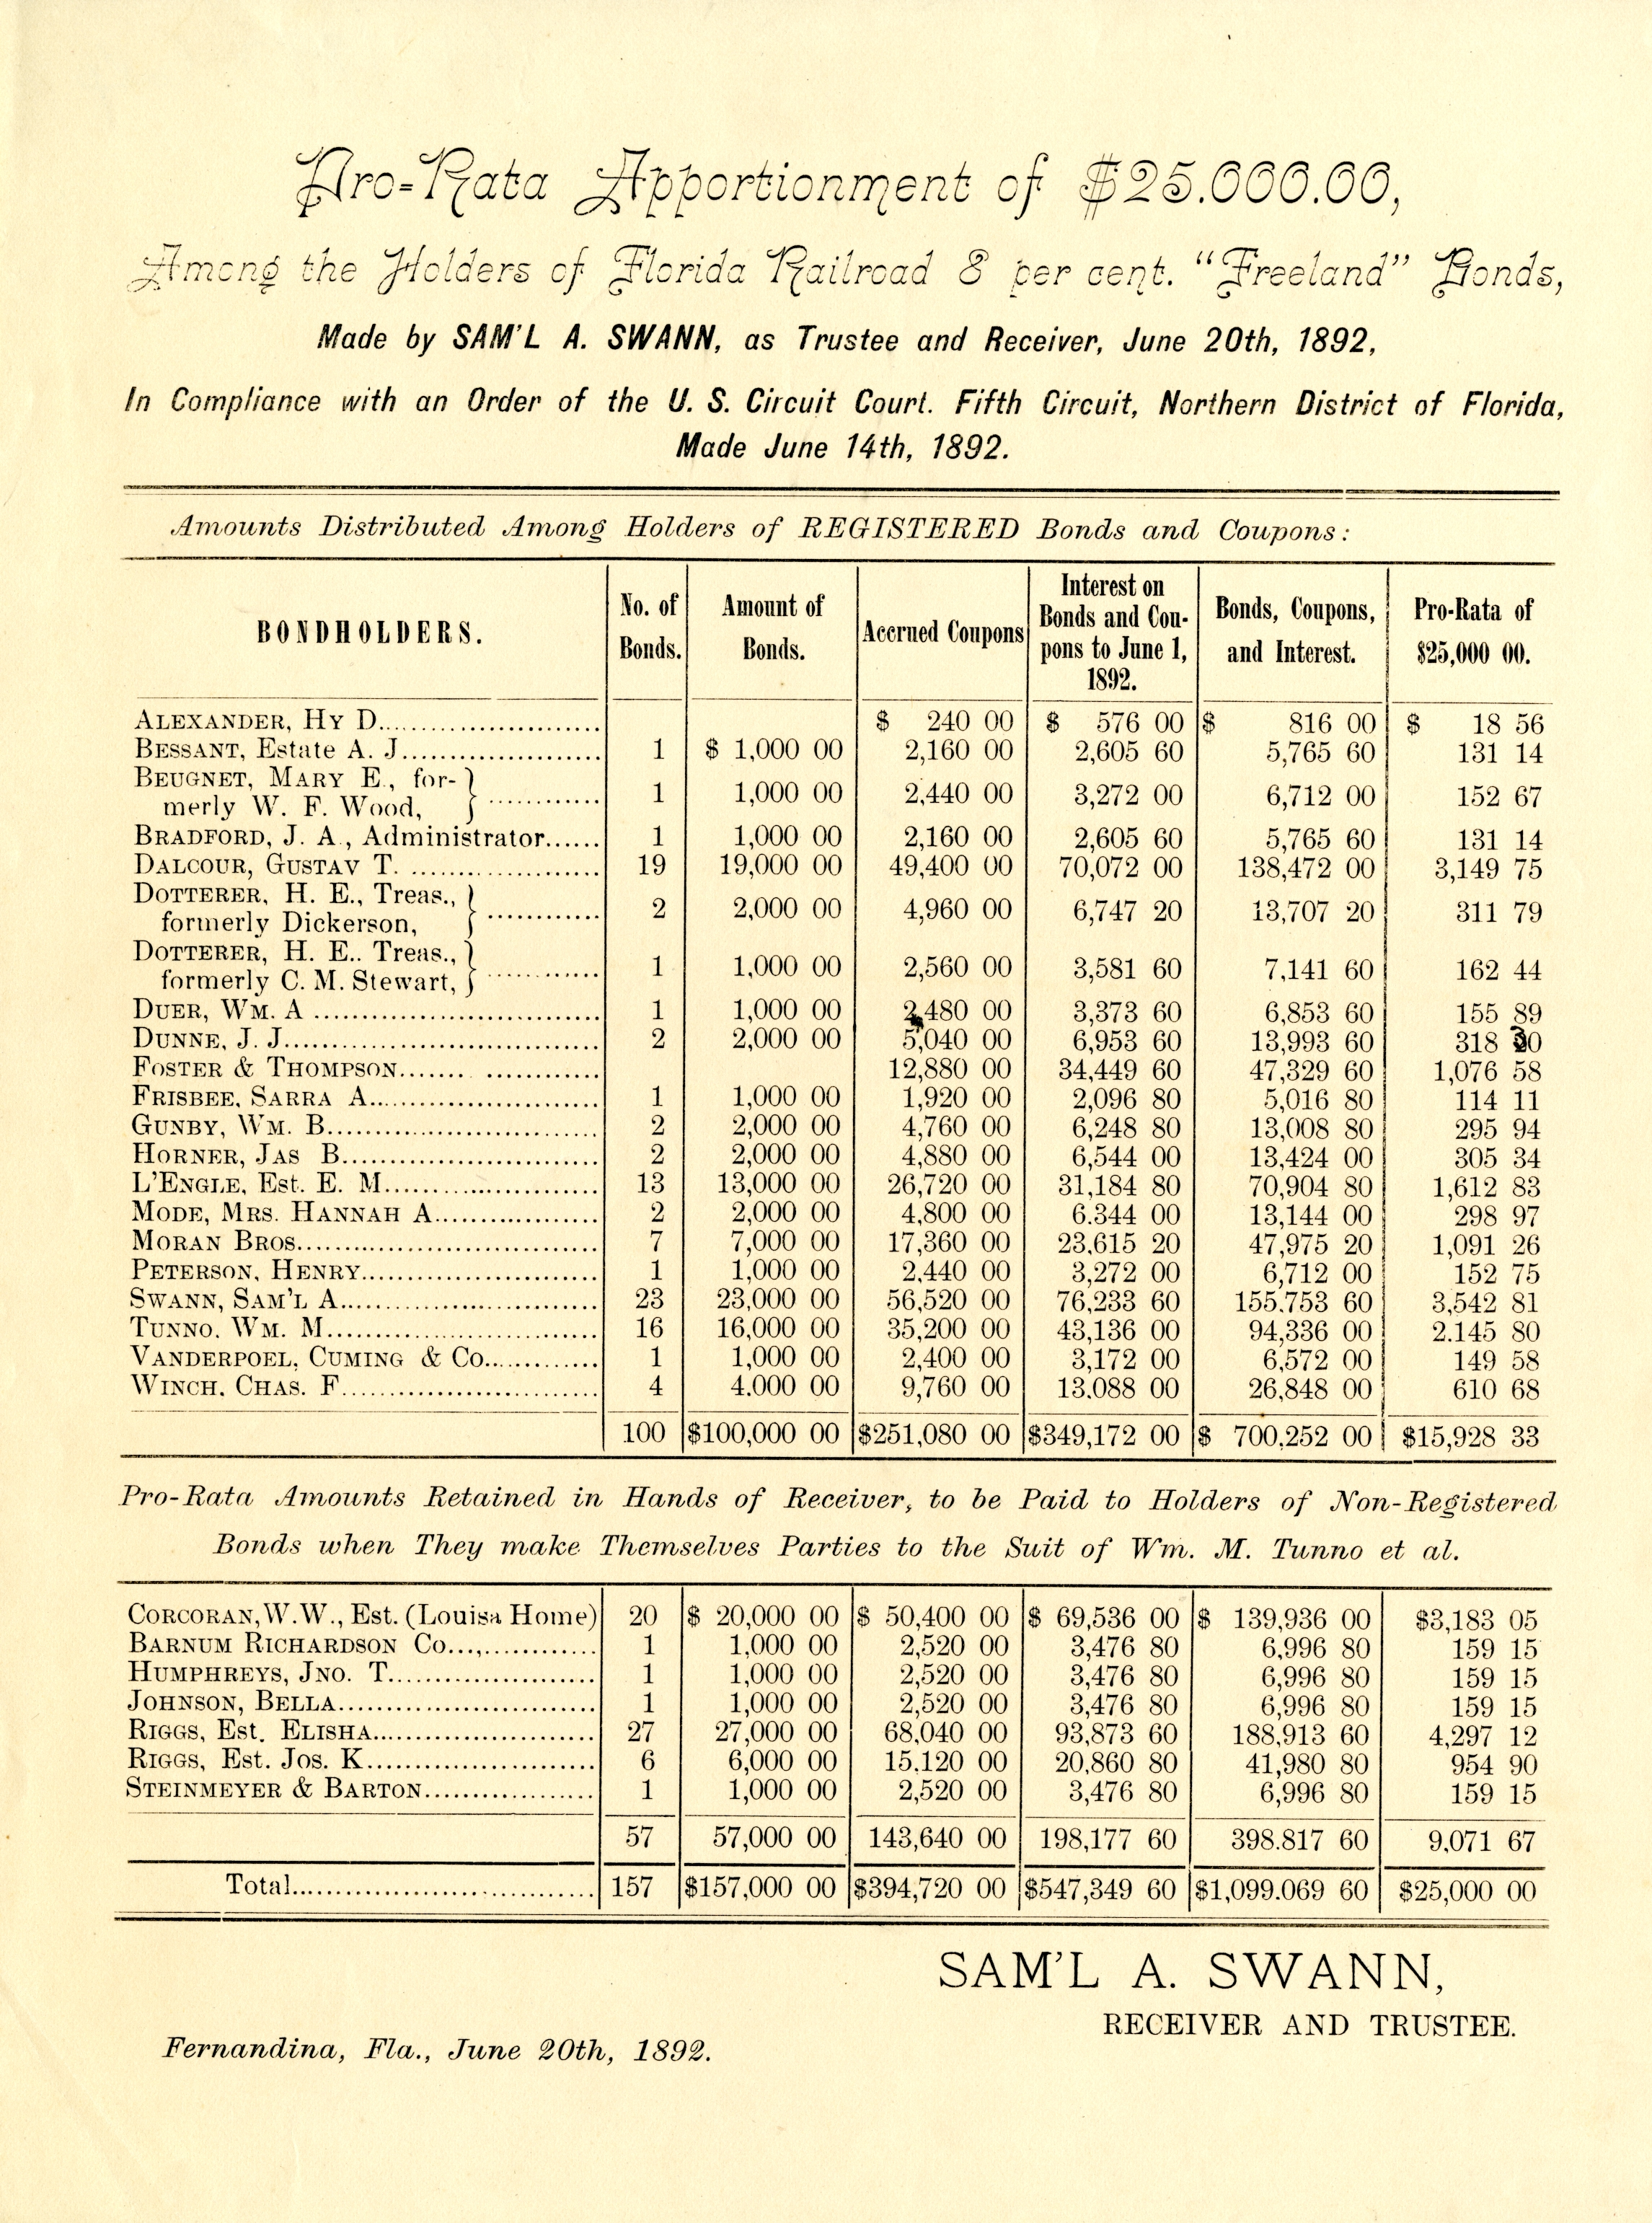 Pro-rata apportionment of $25,000.00, among the holders of Florida Railroad 8 percent 'Freeland' Bonds.